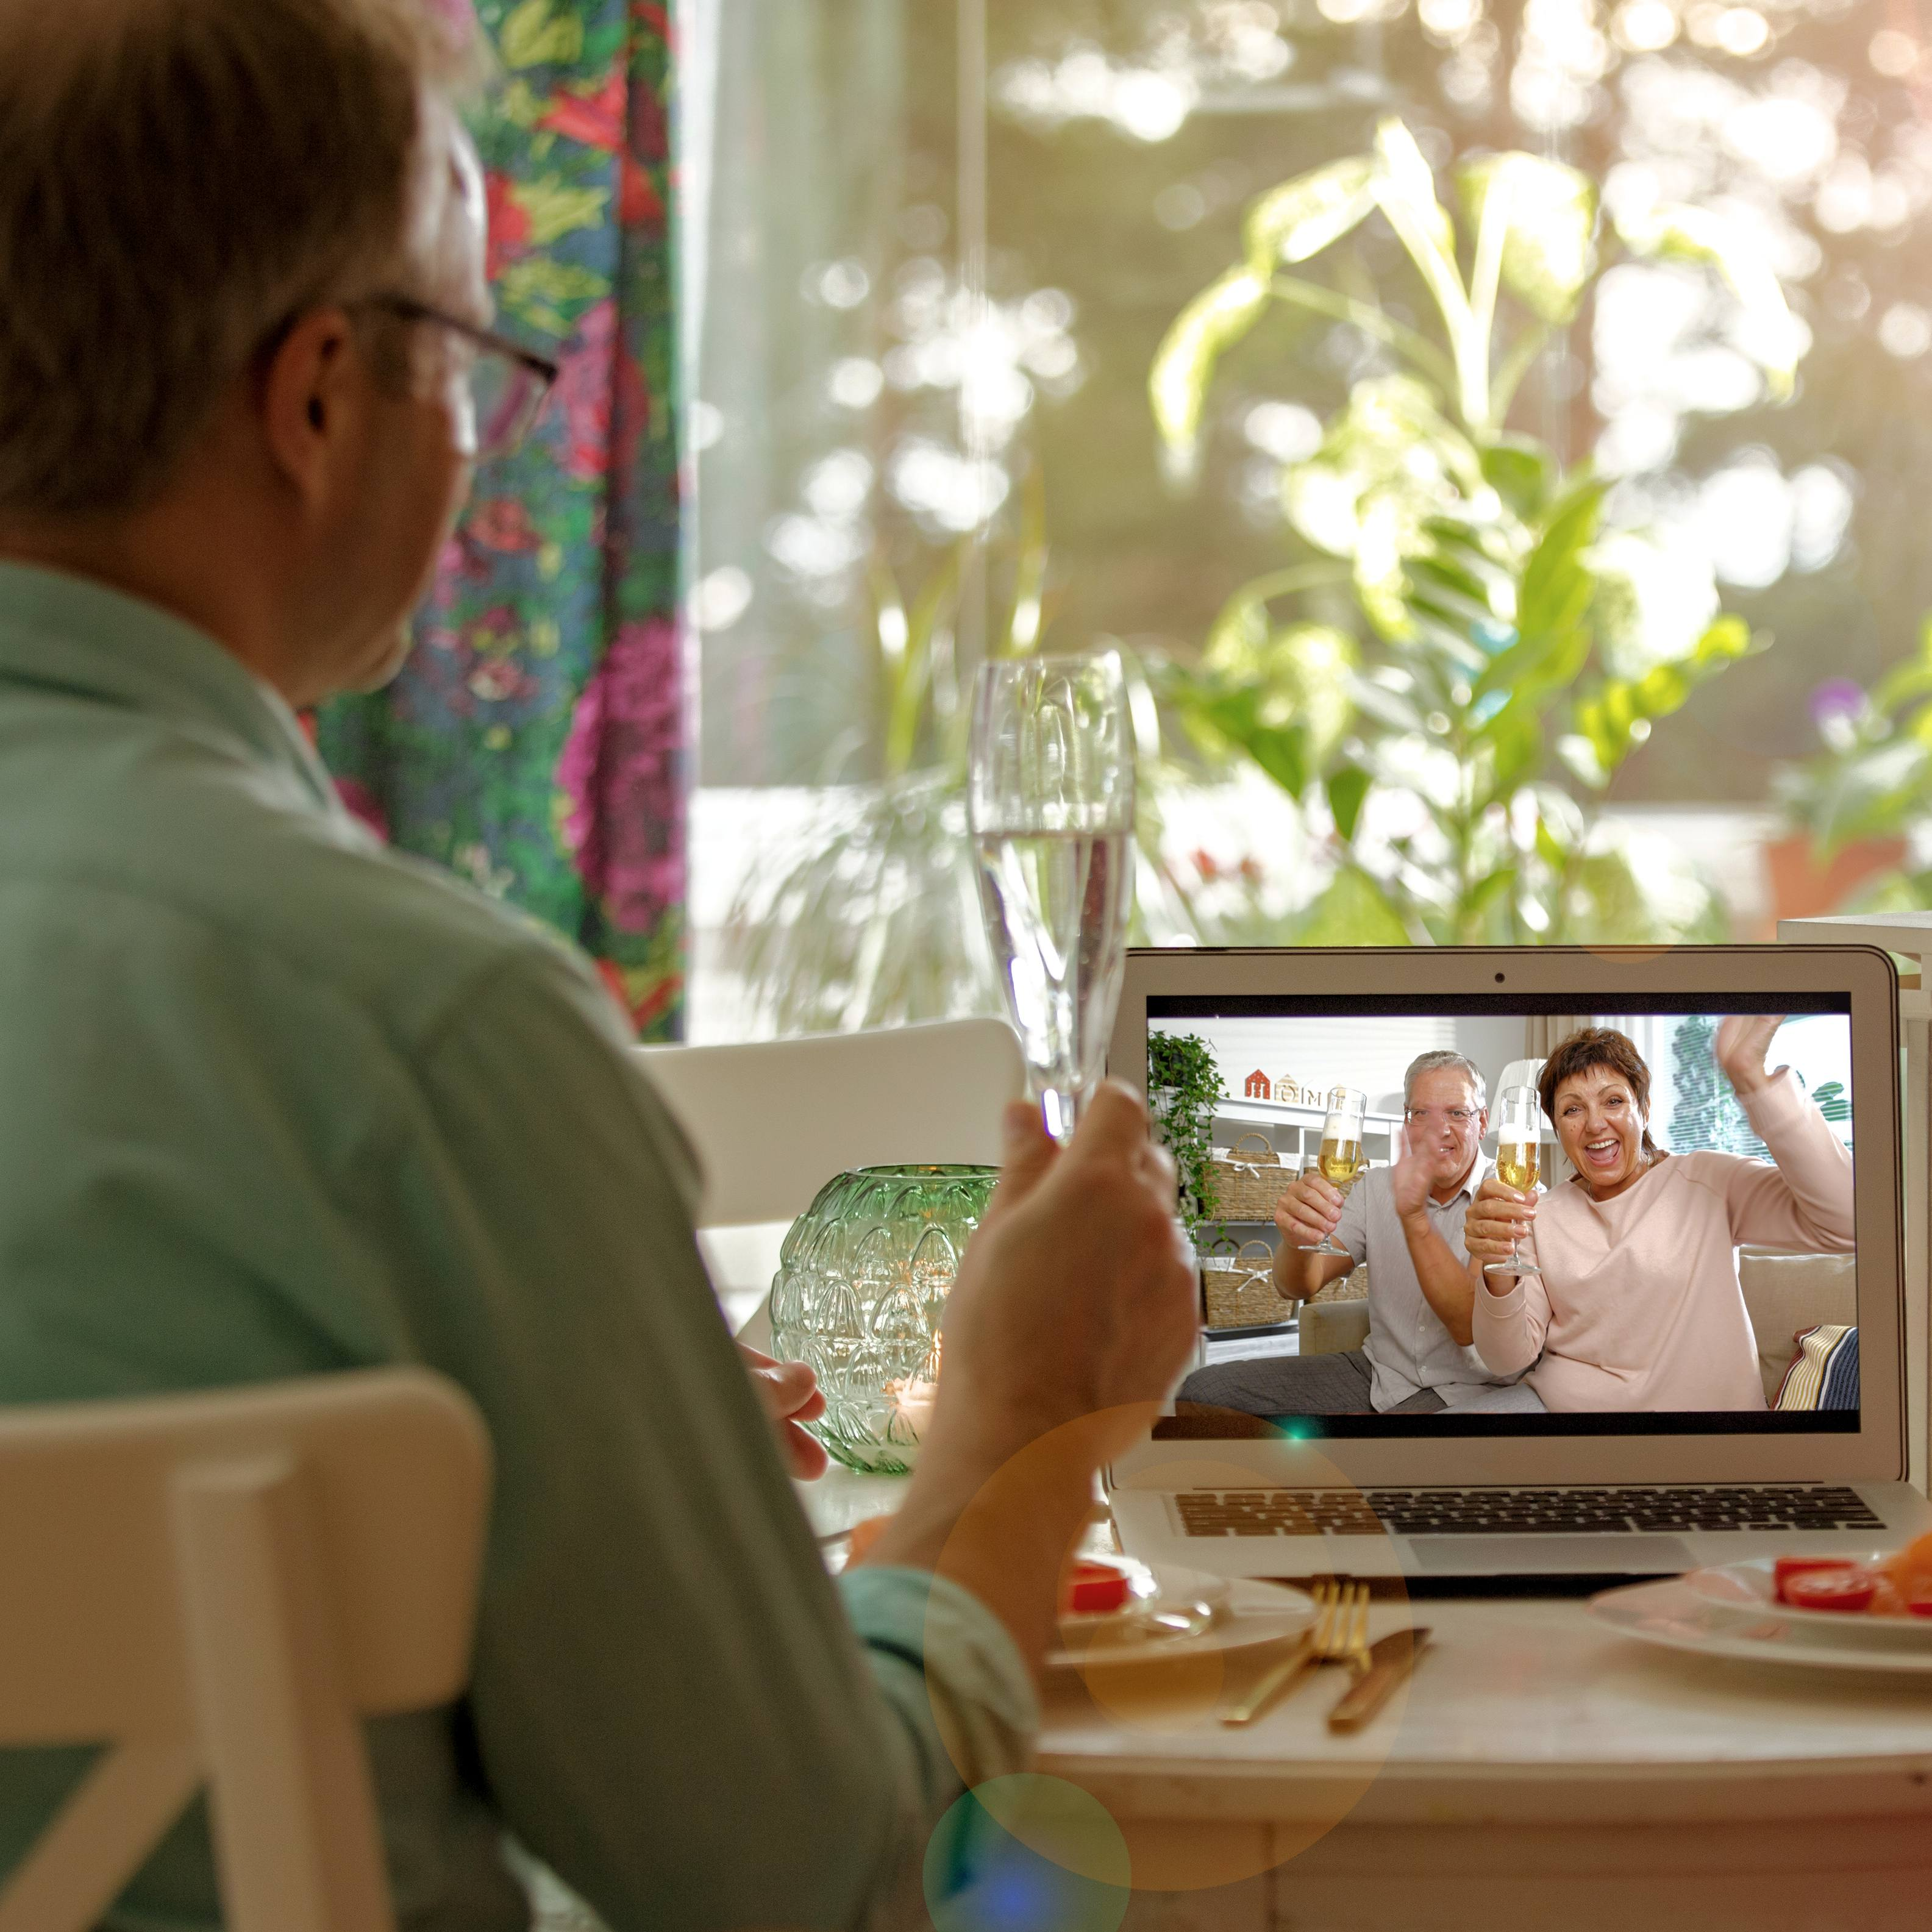 a white man and a white woman sitting at a dinner table with glasses of champagne greeting friends or family members over a virtual meeting on a laptop